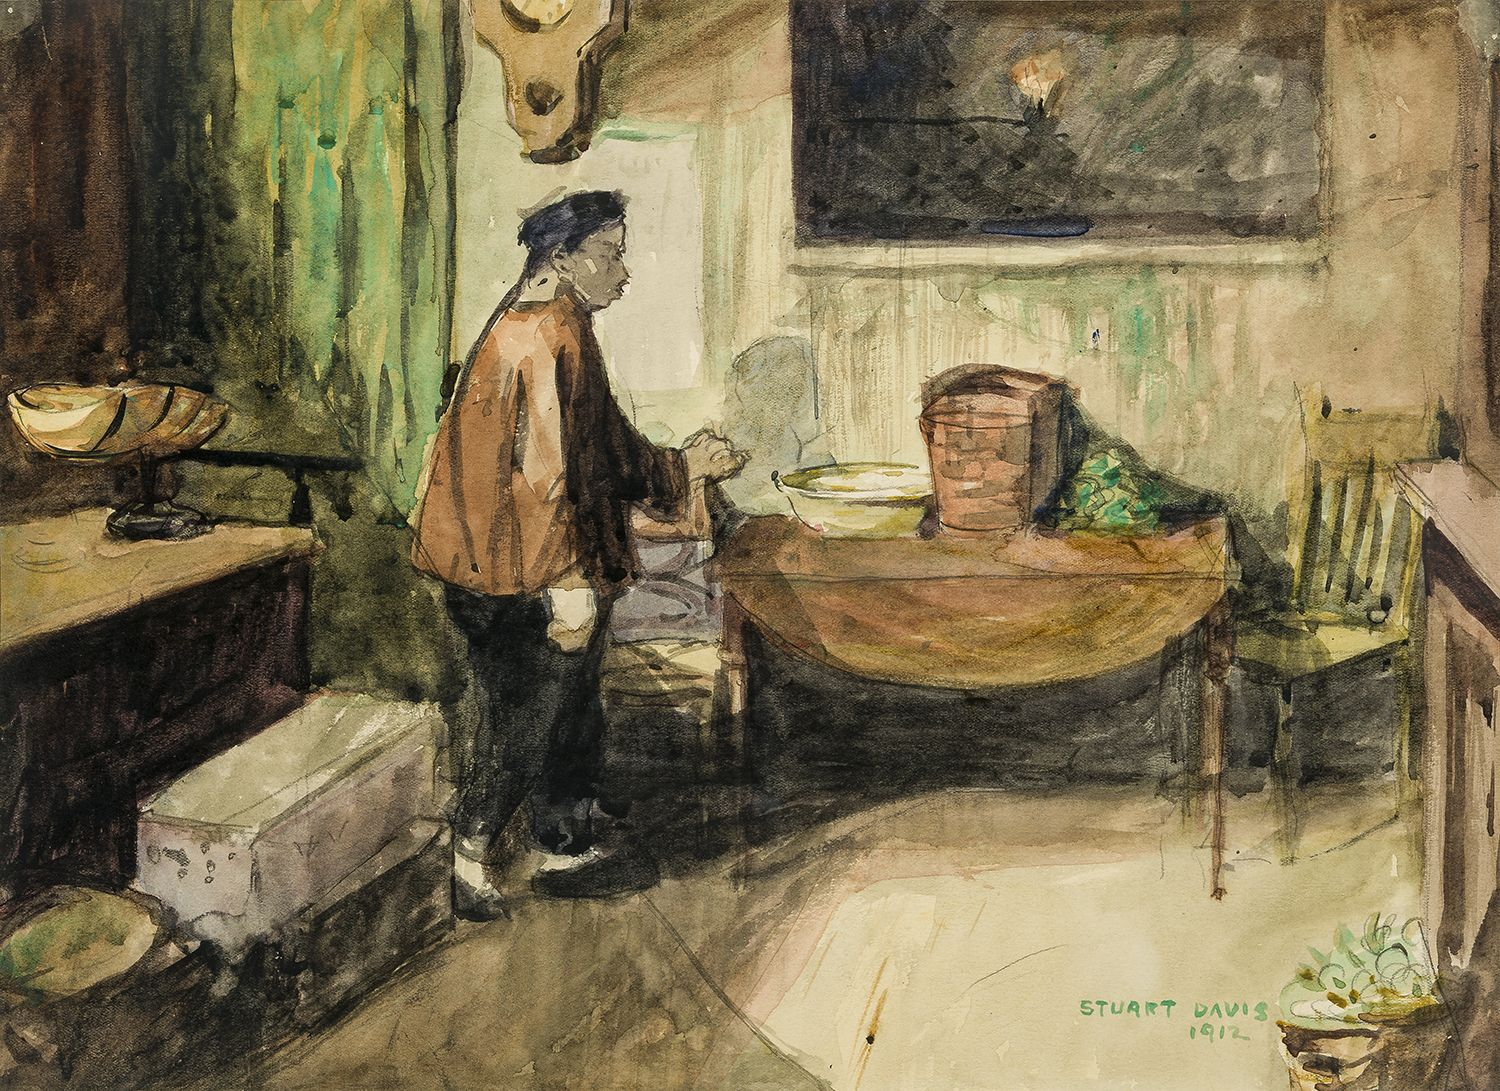 The Chinese Merchant, 1912, Watercolor and pencil on paper, 10 1/2 x 14 1/2 in.